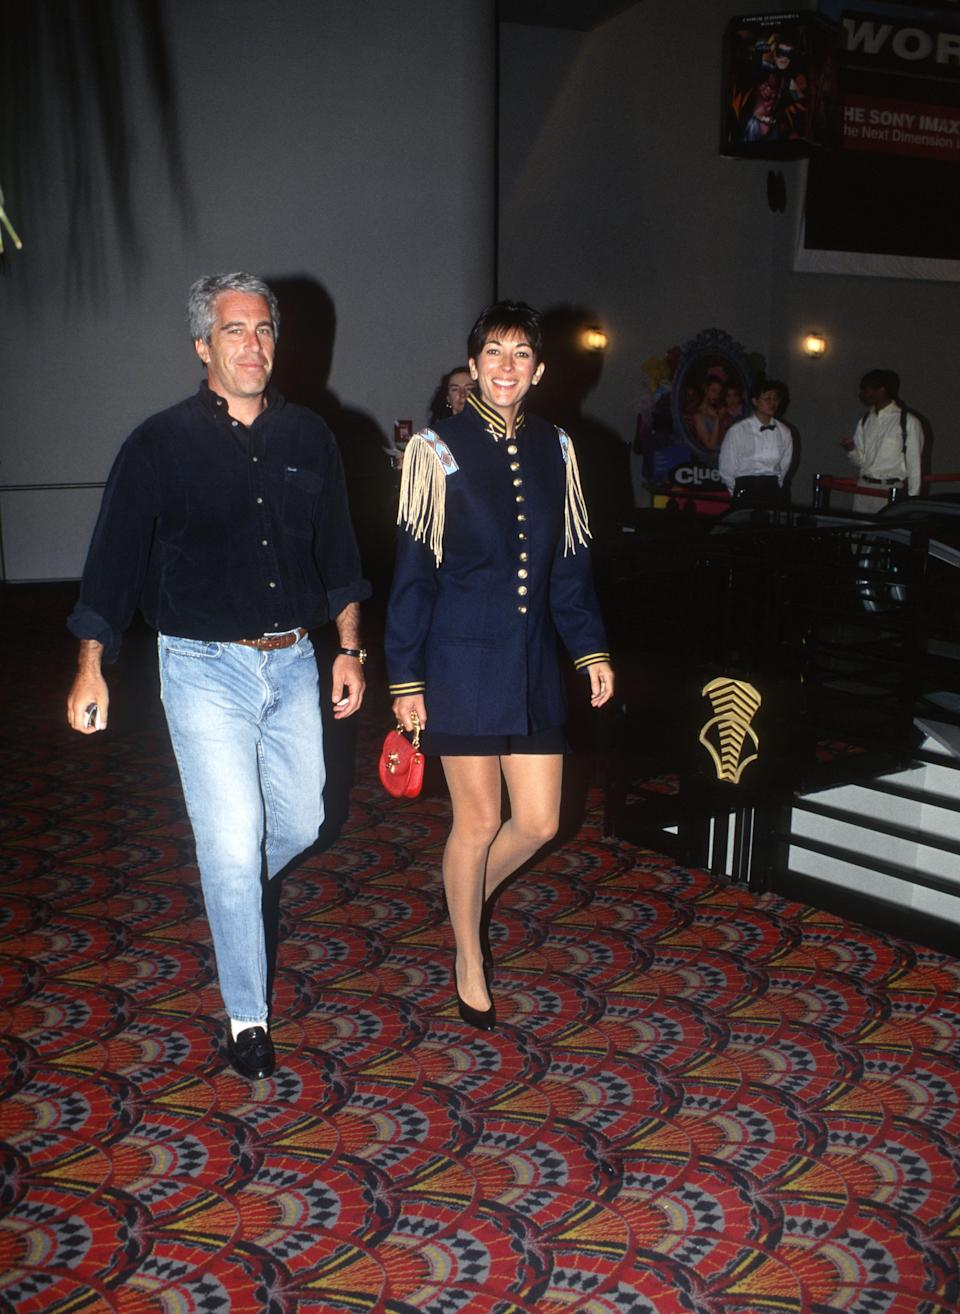 Jeffrey Epstein and Ghislaine Maxwell at a film screening in 1995